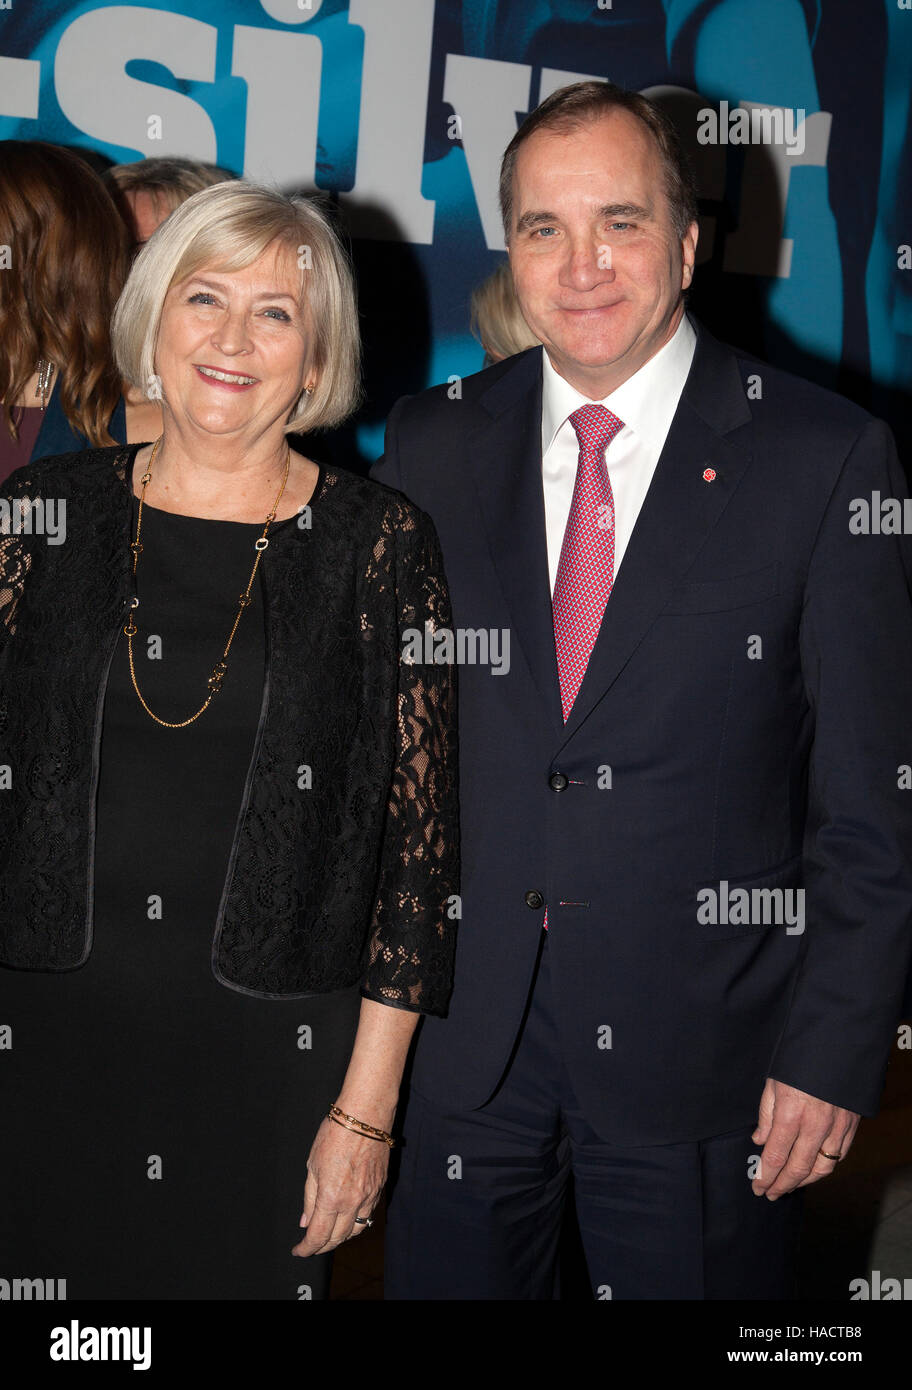 STEFAN LÖFVÈN The Swedish Prime minister with wife Ulla at the Swedish Annual football gala - Stock Image